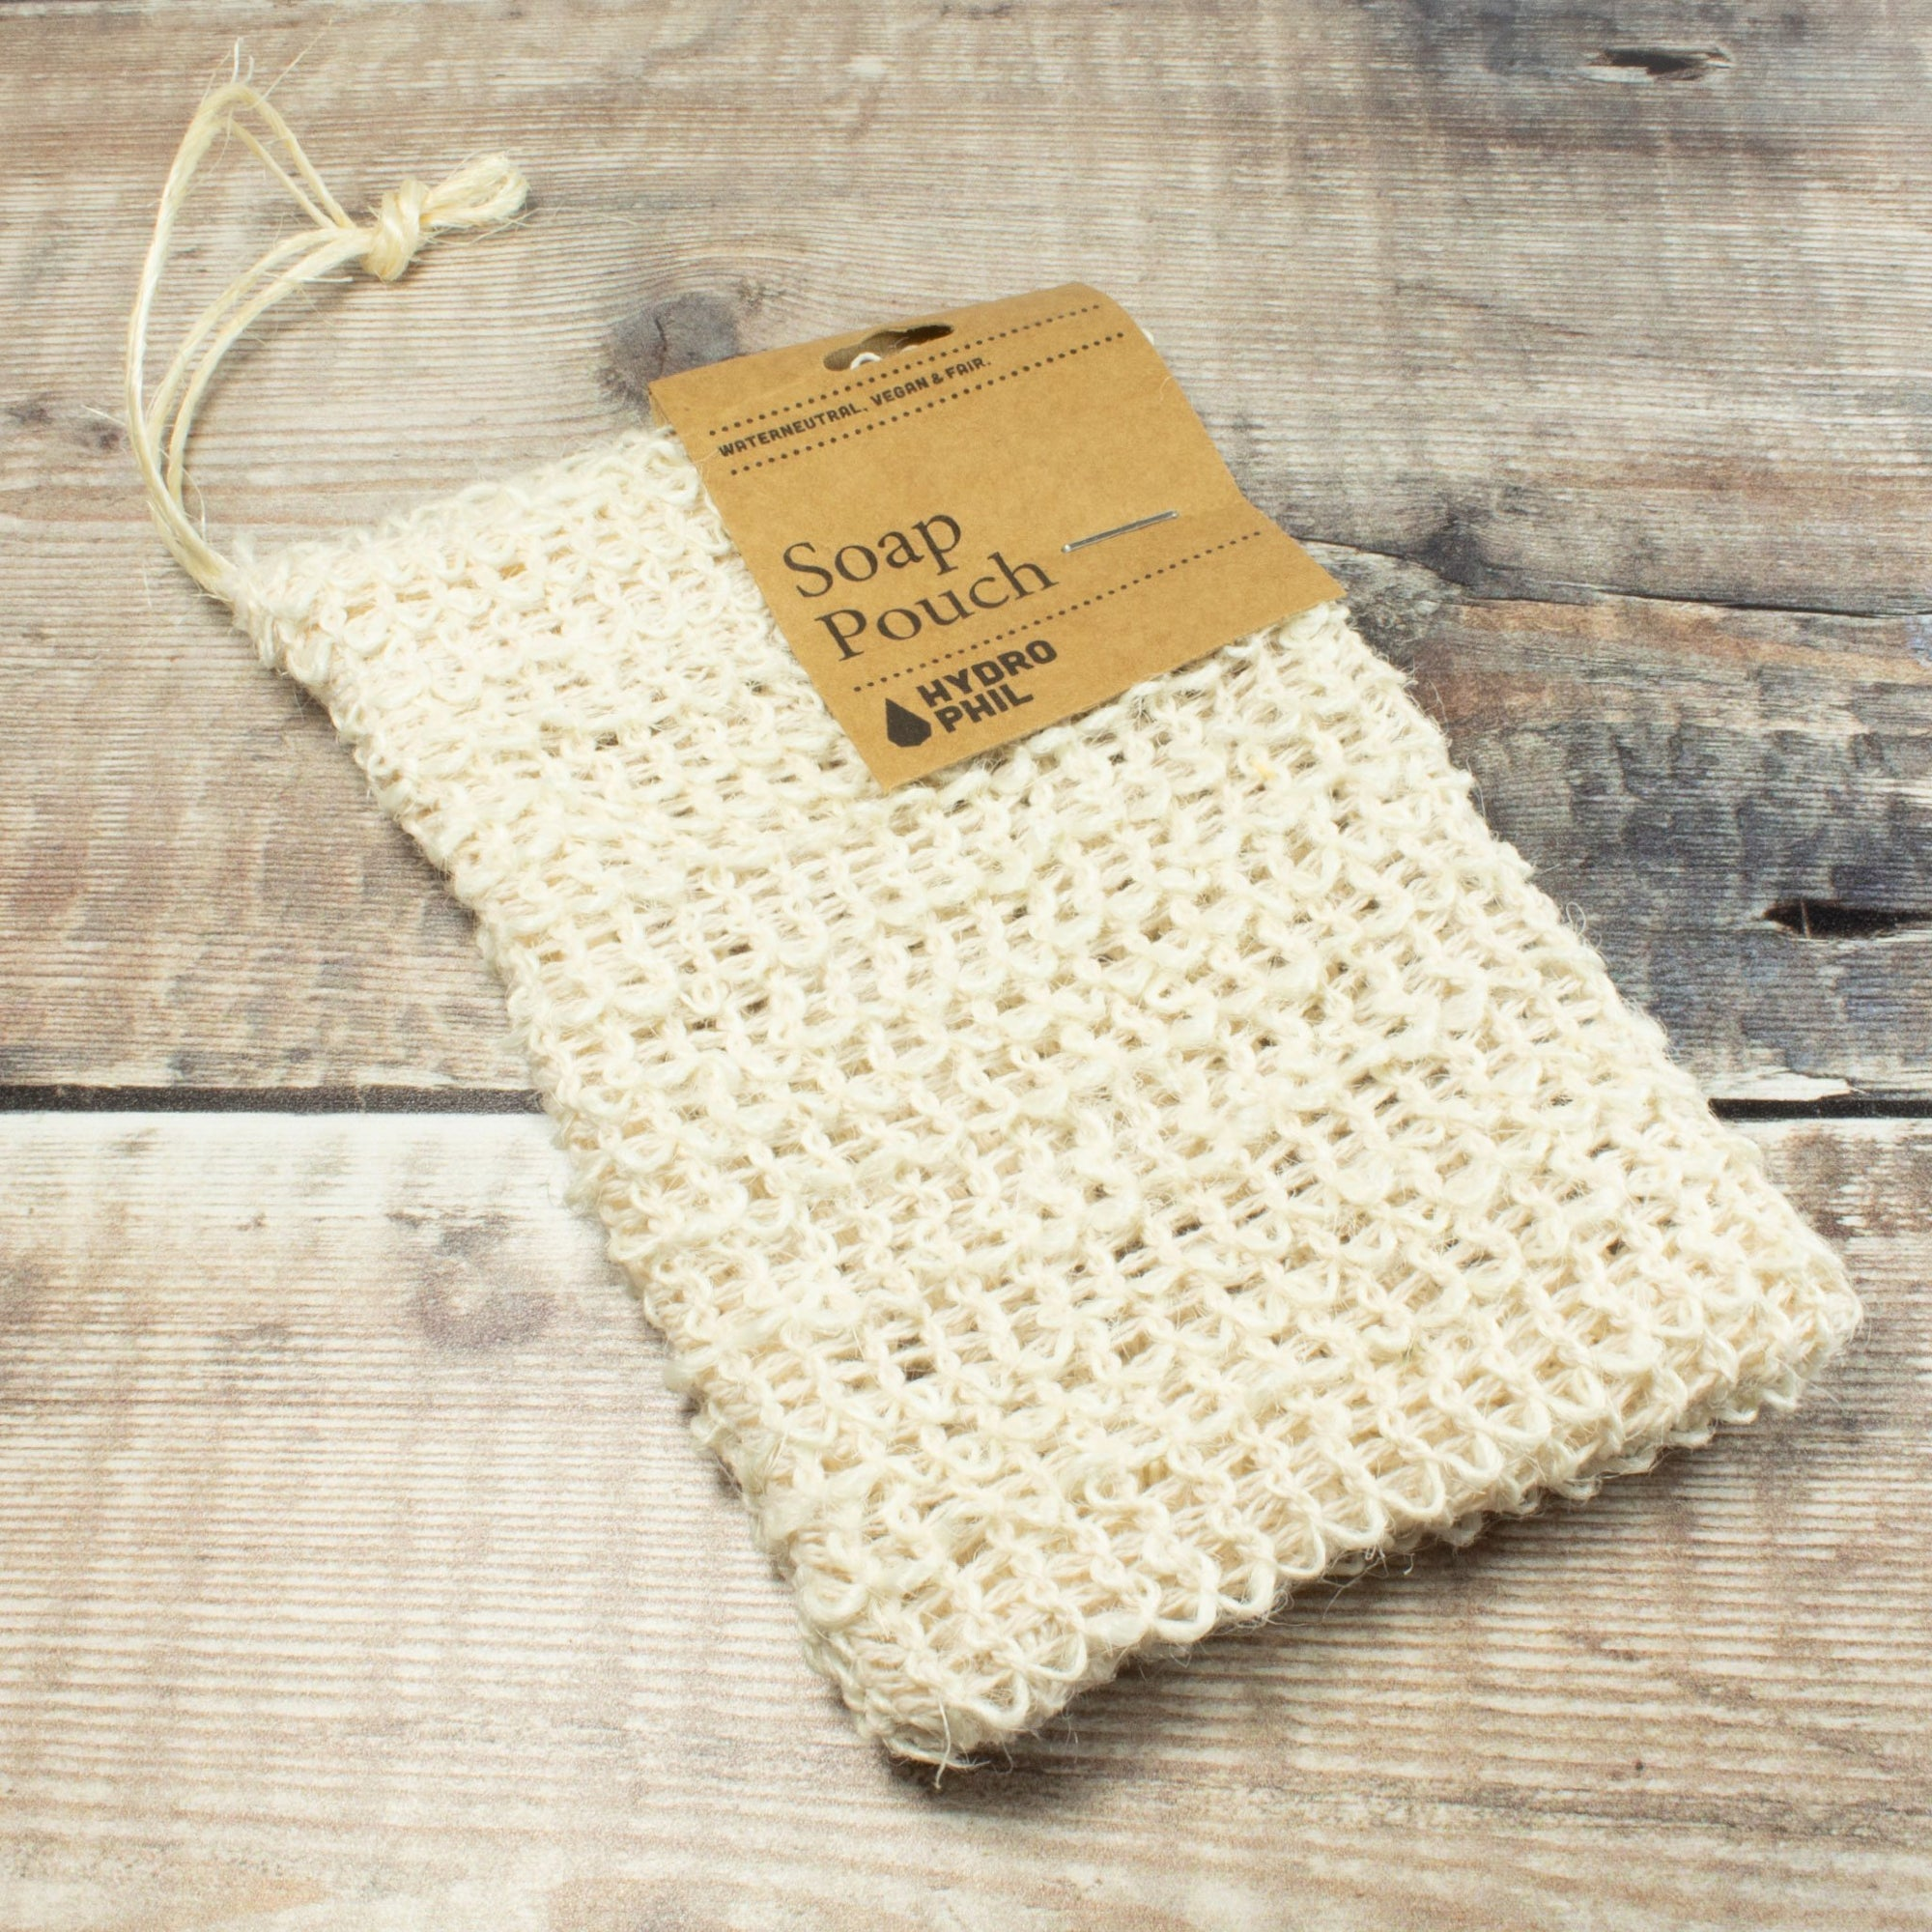 Exfoliating Sisal Soap Pouch | Flannel - The Naughty Shrew